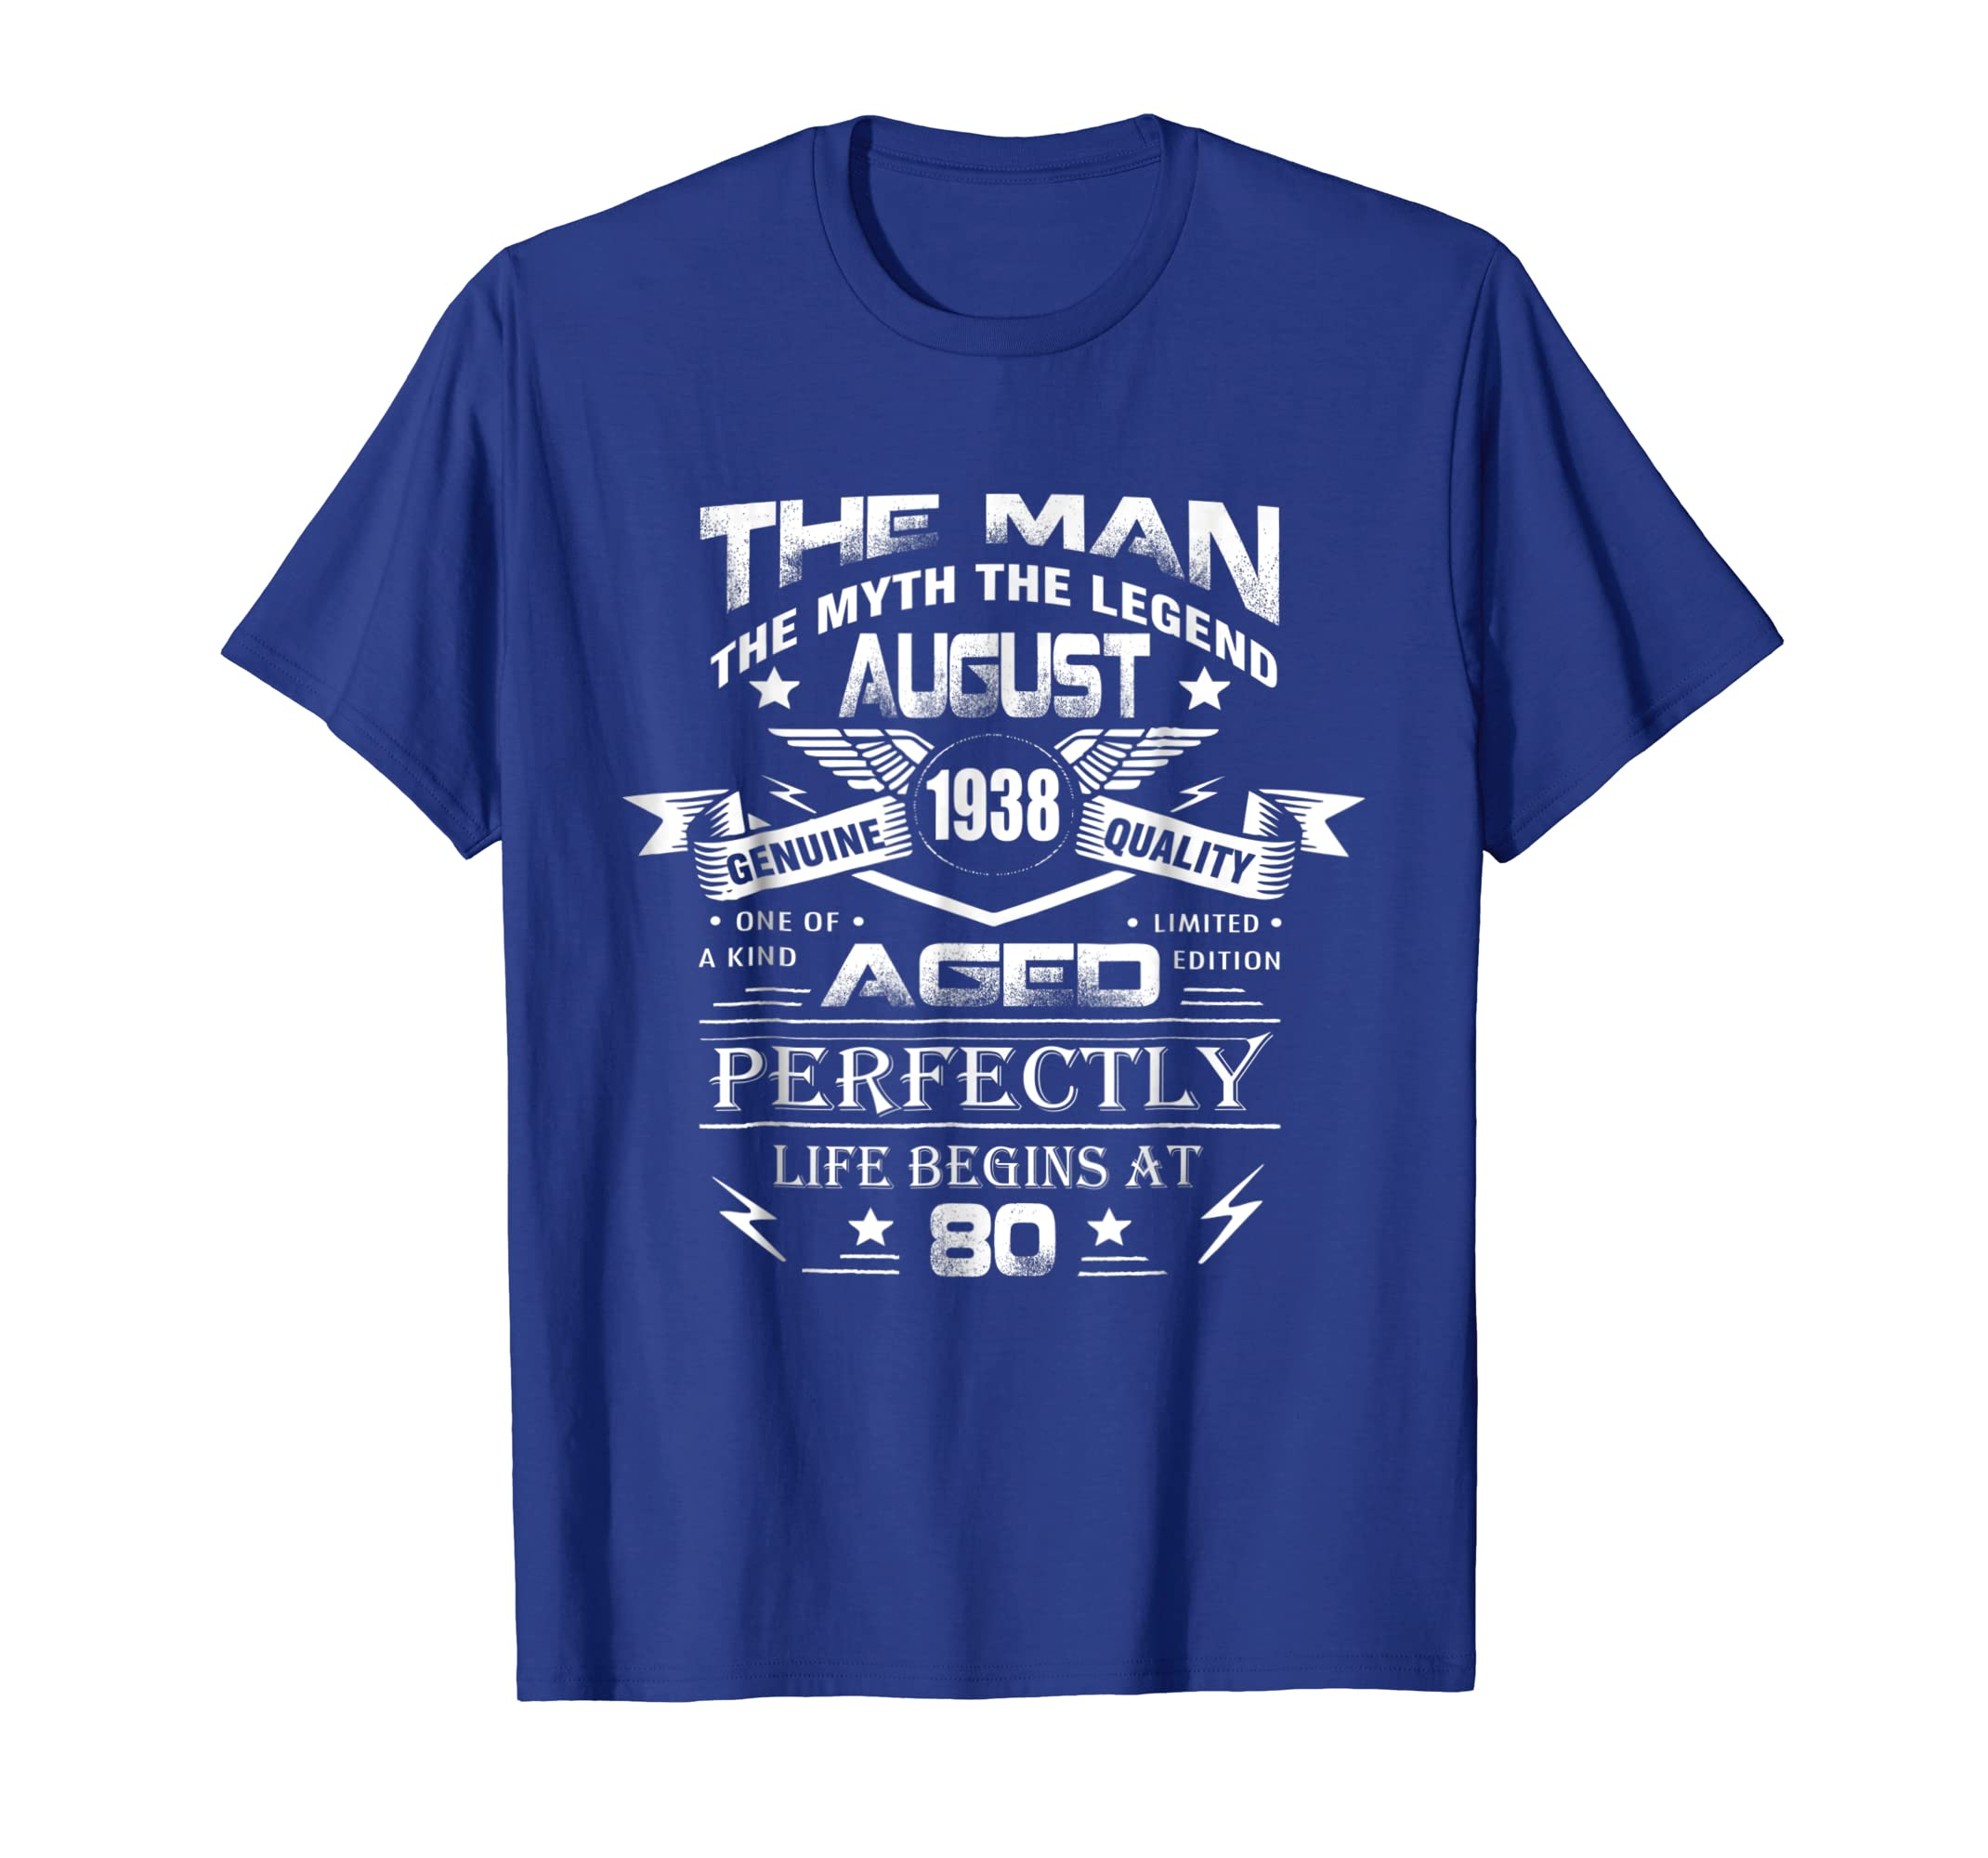 August 1938 Shirt 80th Birthday Gift Idea For Men And Women